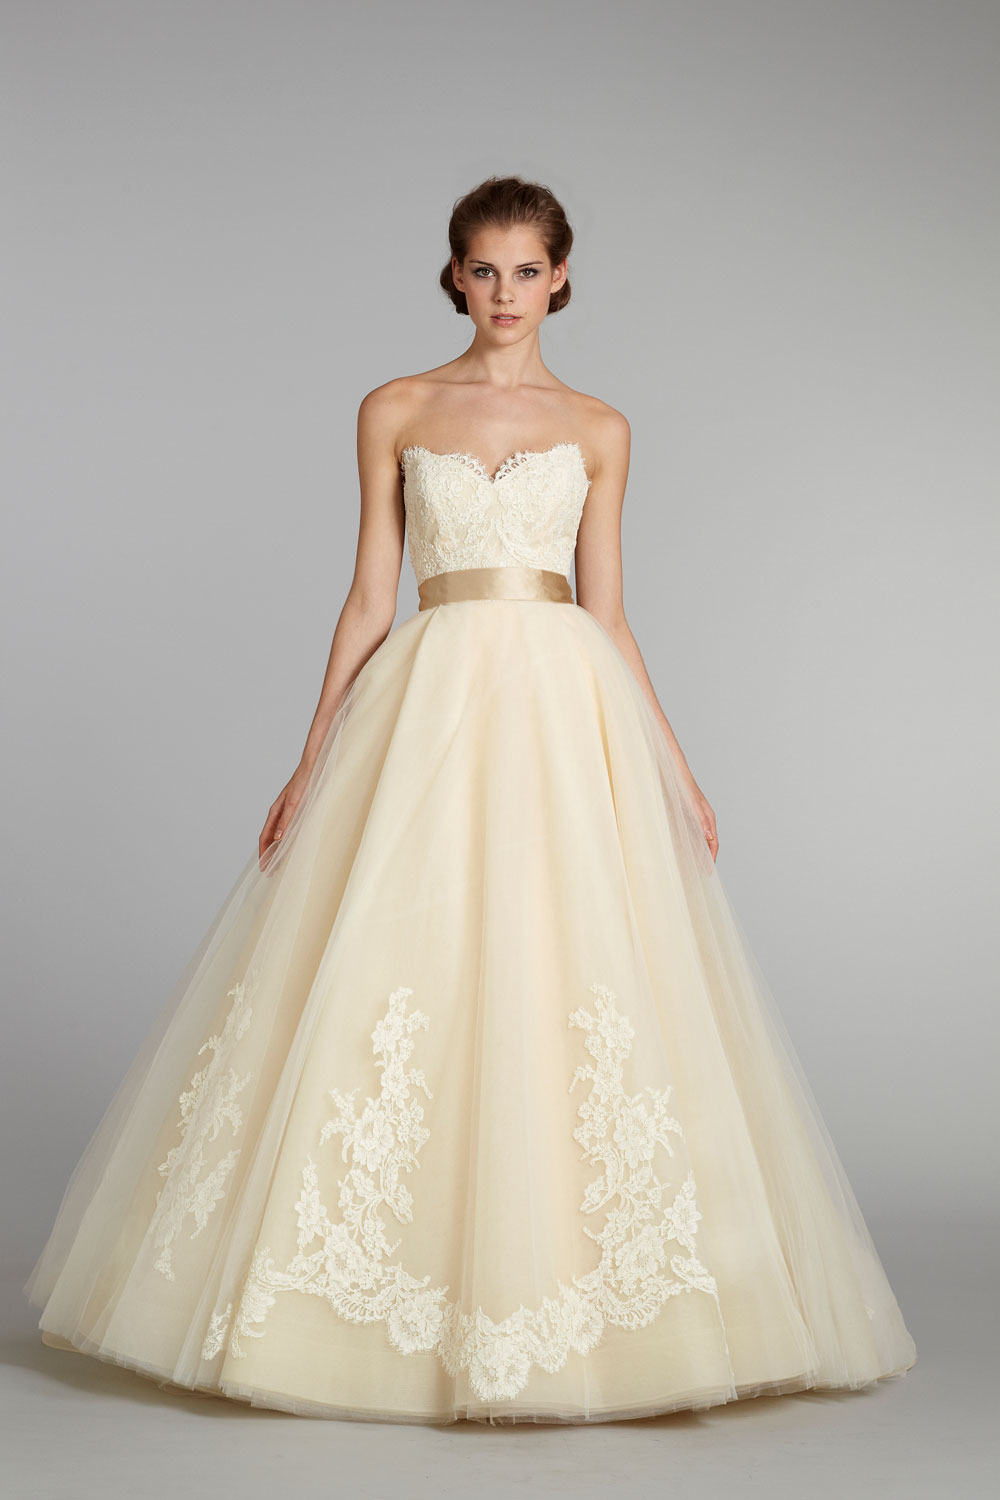 fall-2012-wedding-dress-lazaro-bridal-gowns-3251-pale-yellow-ballgown.original